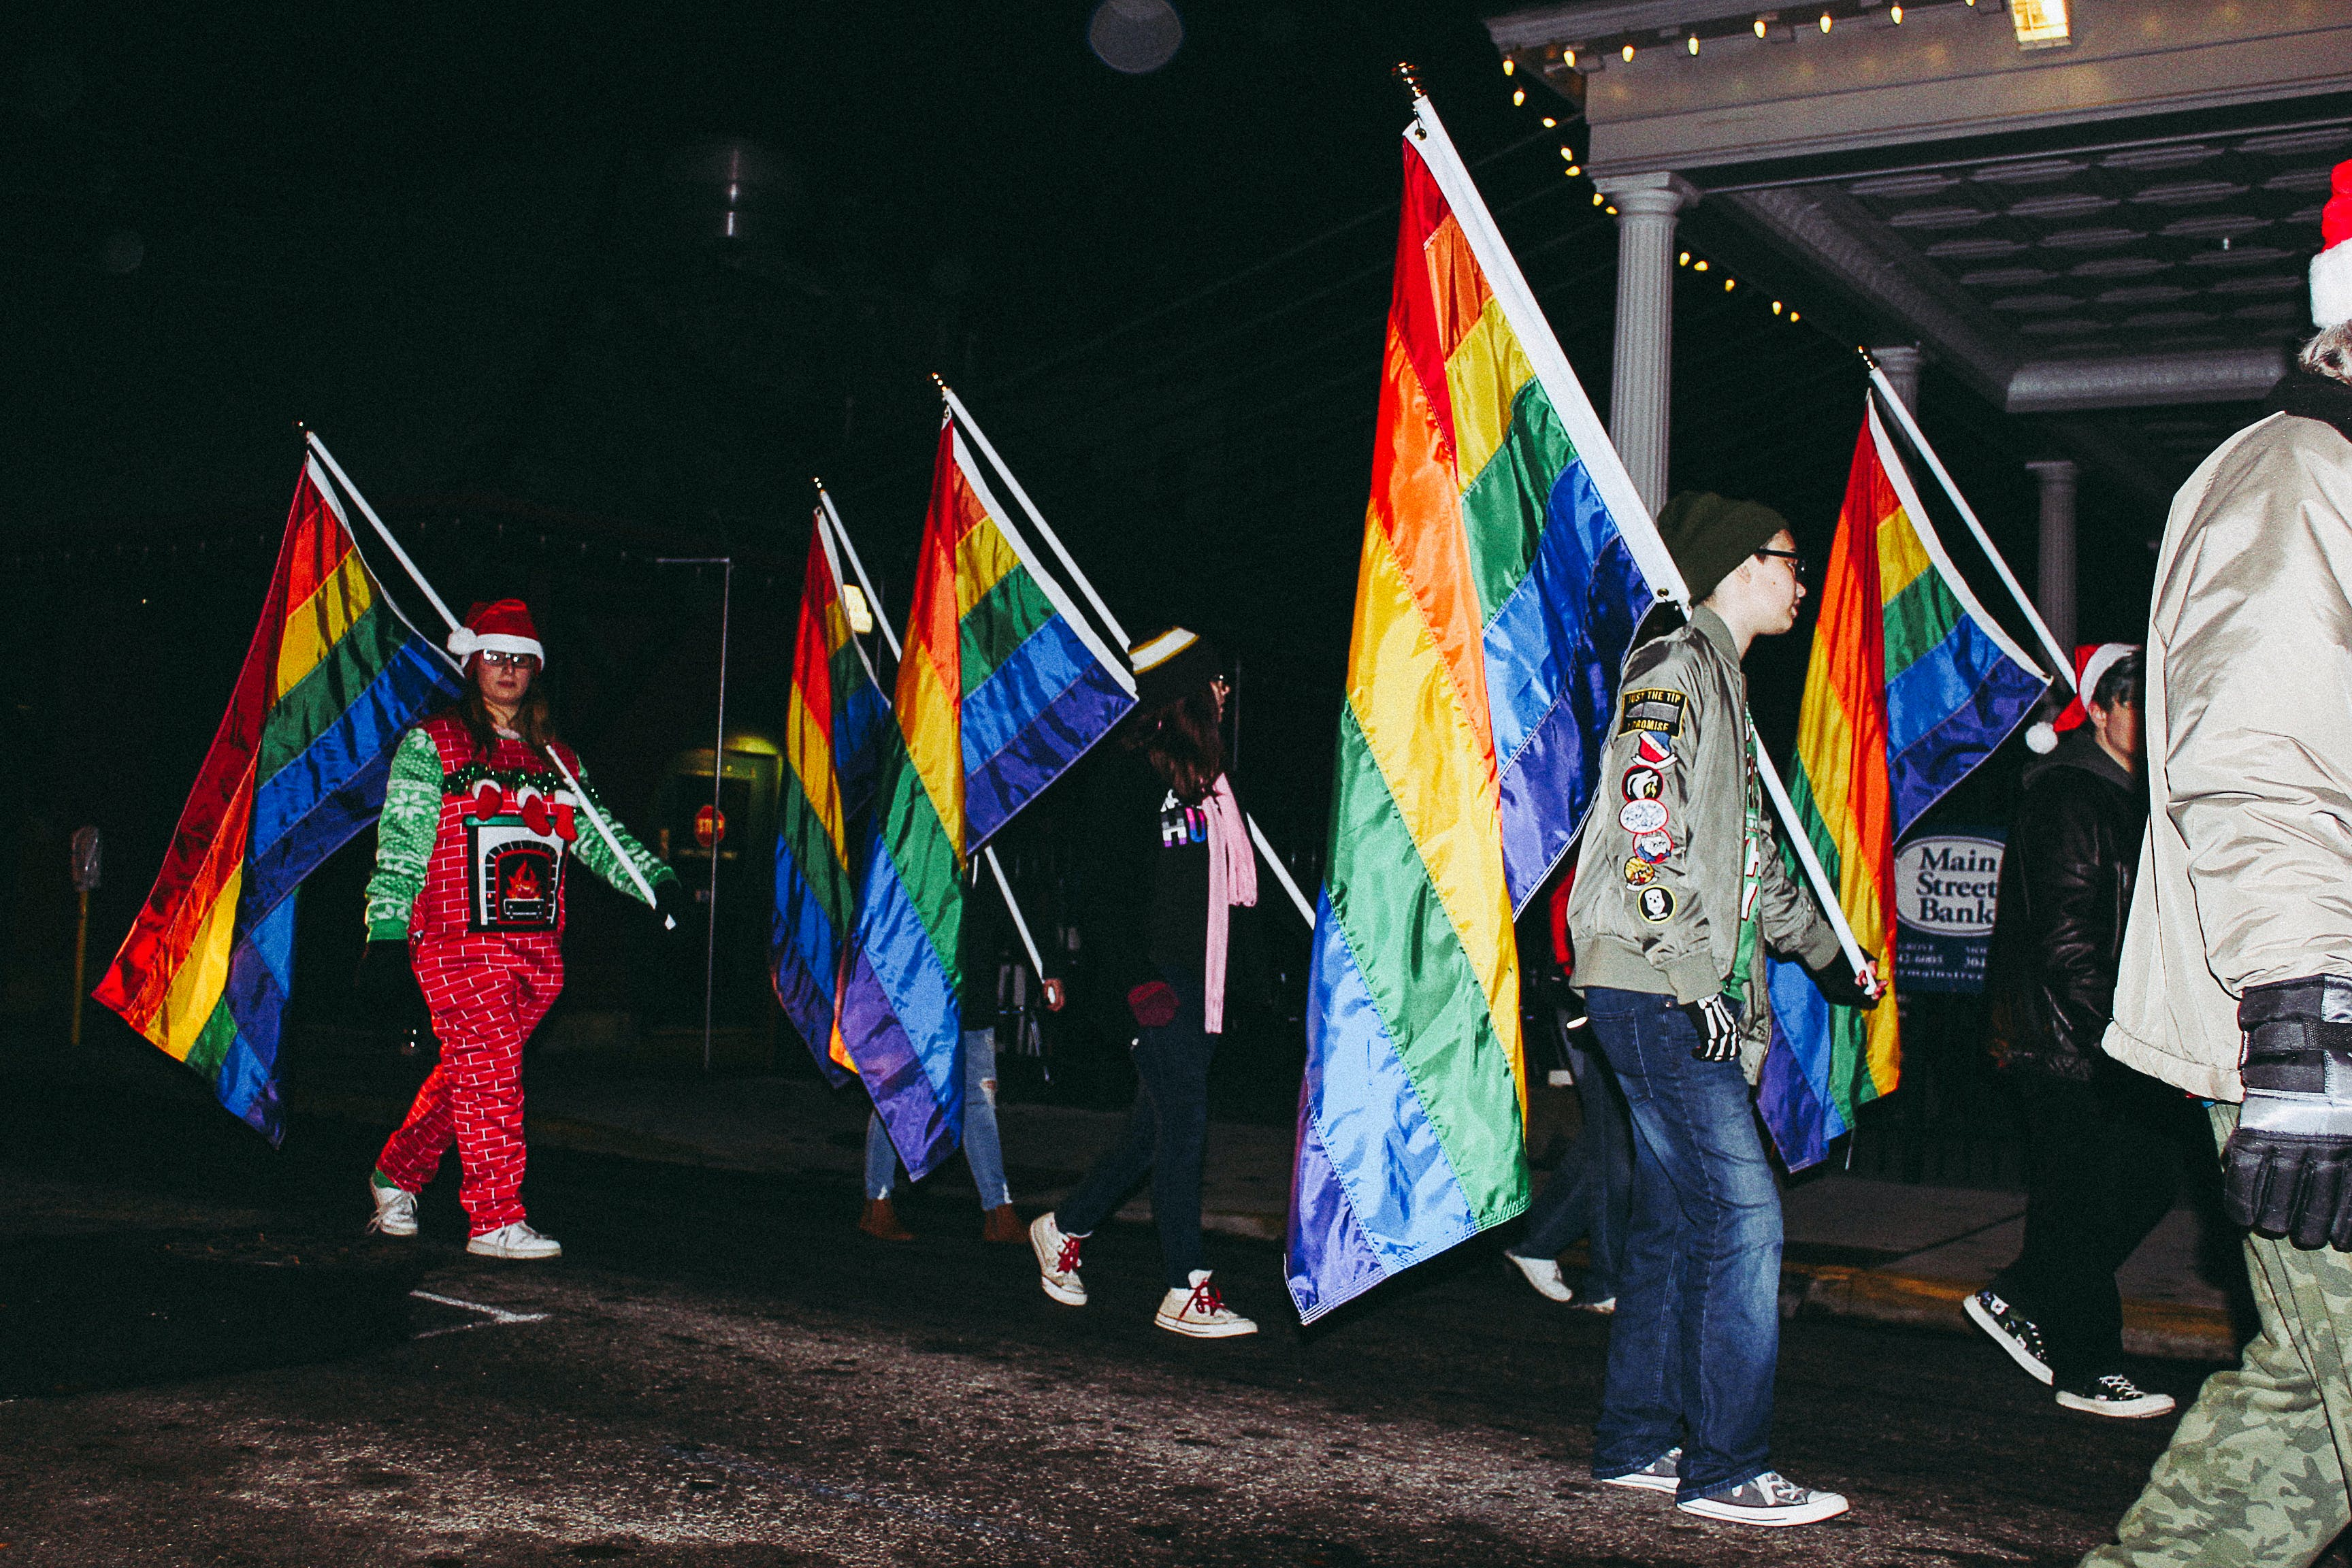 People Carrying Flags during Nighttime